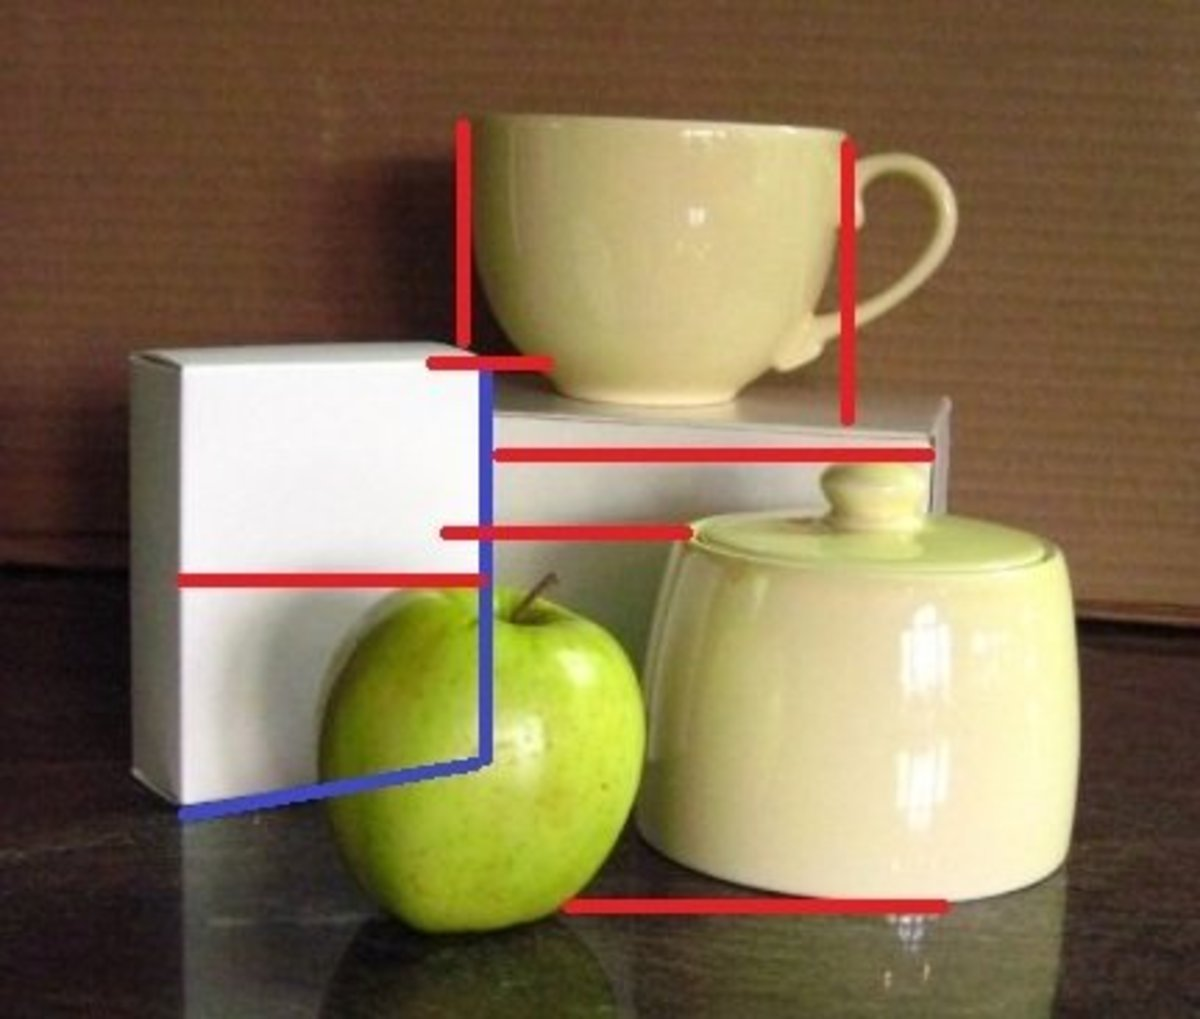 Check angles and lines and how high each object is compared with the others. Look at how edges and lines intersect each other.